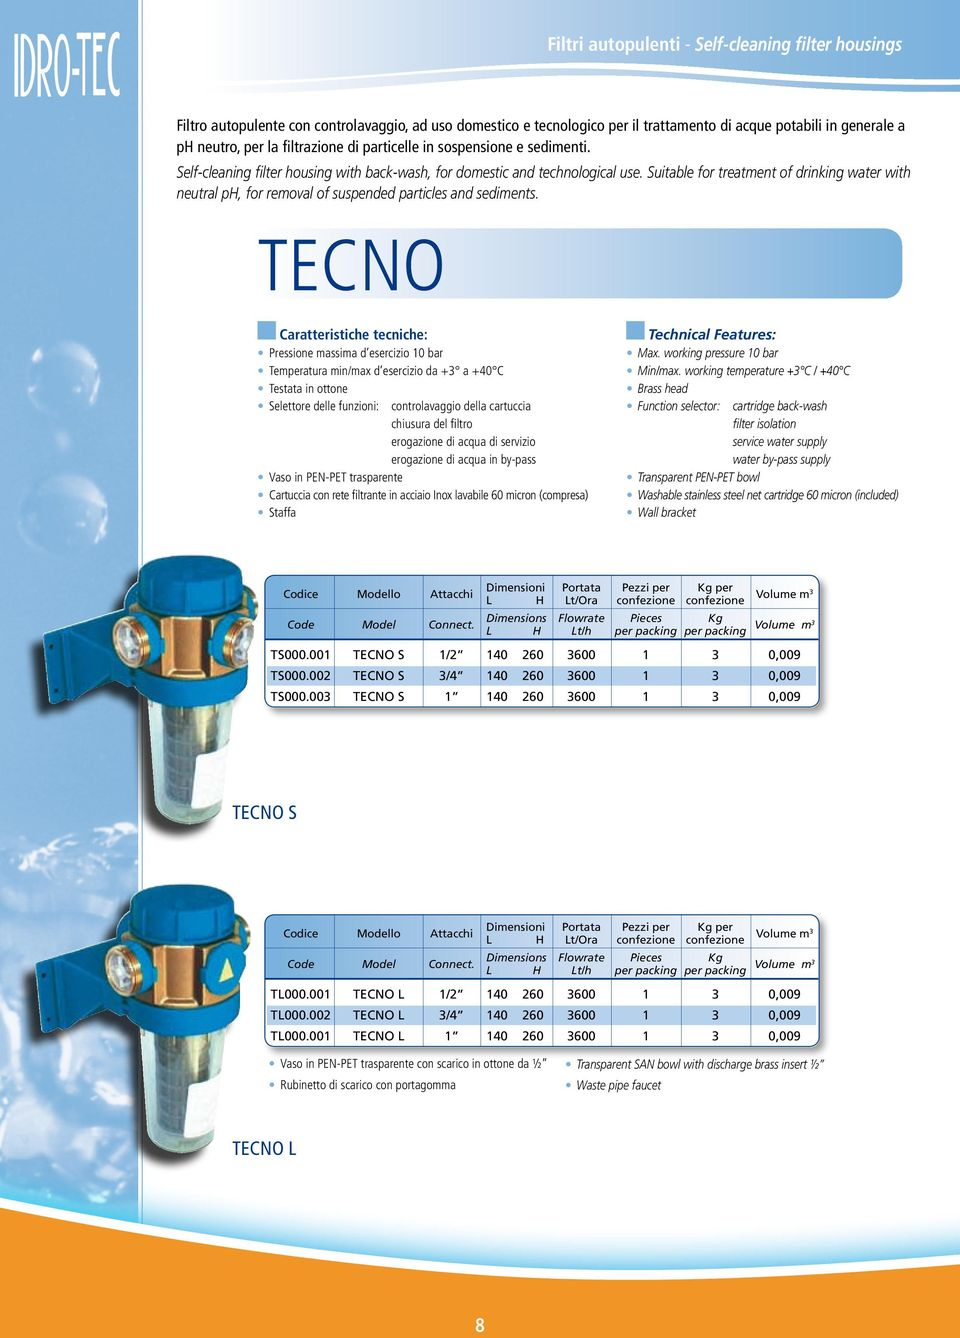 Suitable for treatment of drinking water with neutral ph, for removal of suspended particles and sediments.